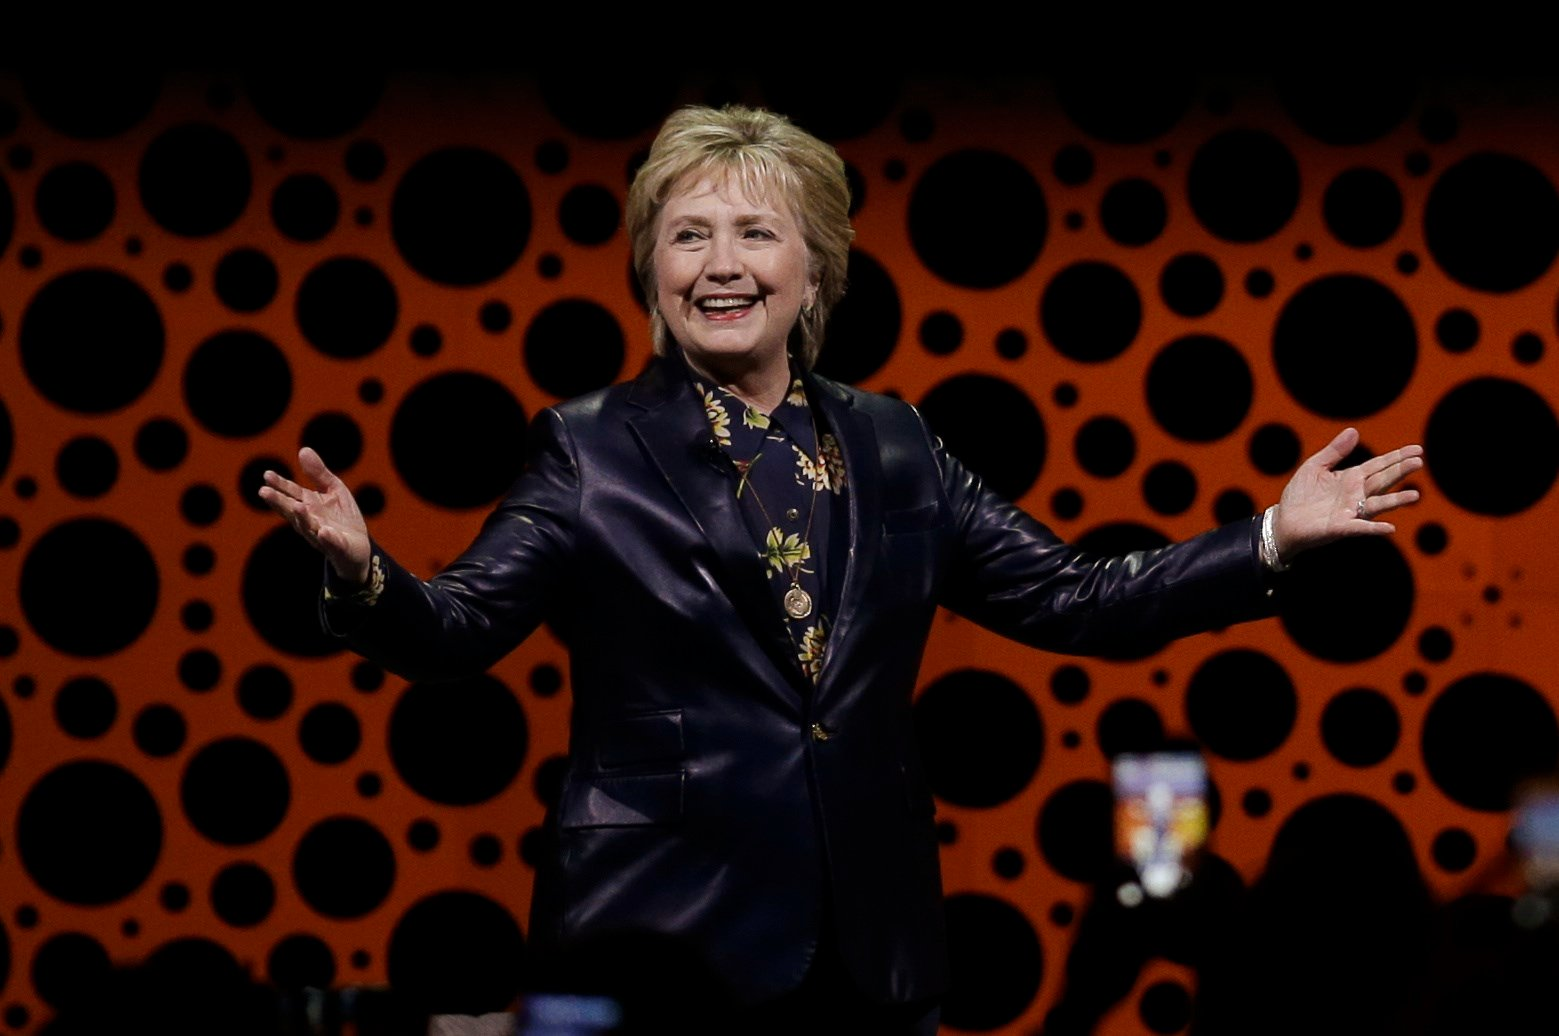 A spirited Hillary Clinton took on the Trump administration Tuesday in one of her first public speeches since she lost the presidential election, criticizing the country's Republican leaders on everything from health care to the shortage of women appointe